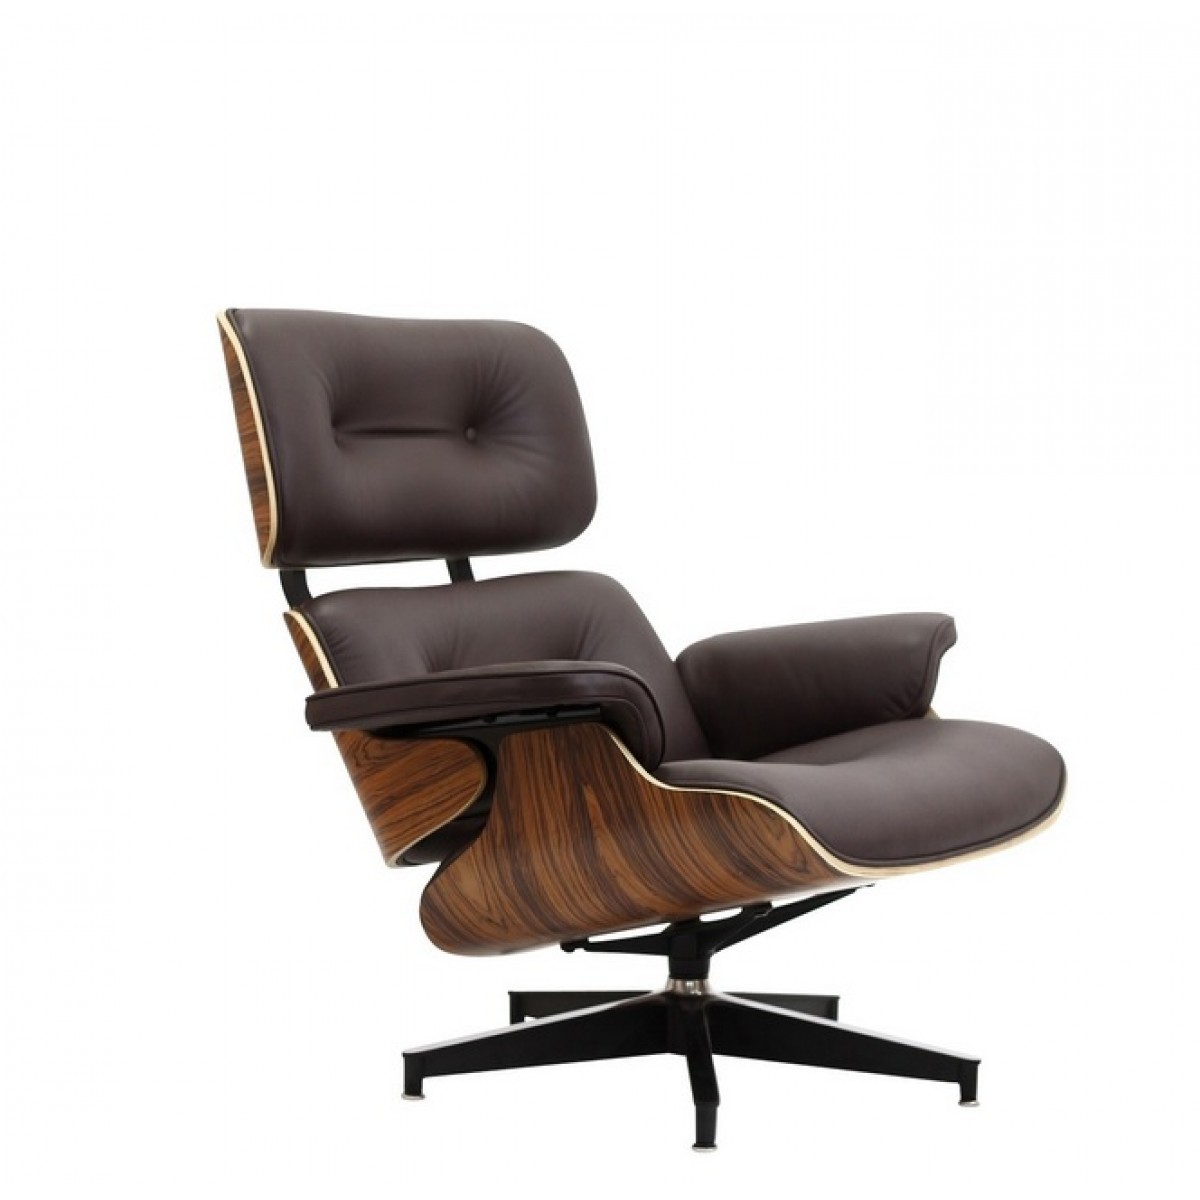 wood and leather chair executive arm covers eames style lounge ottoman brown walnut